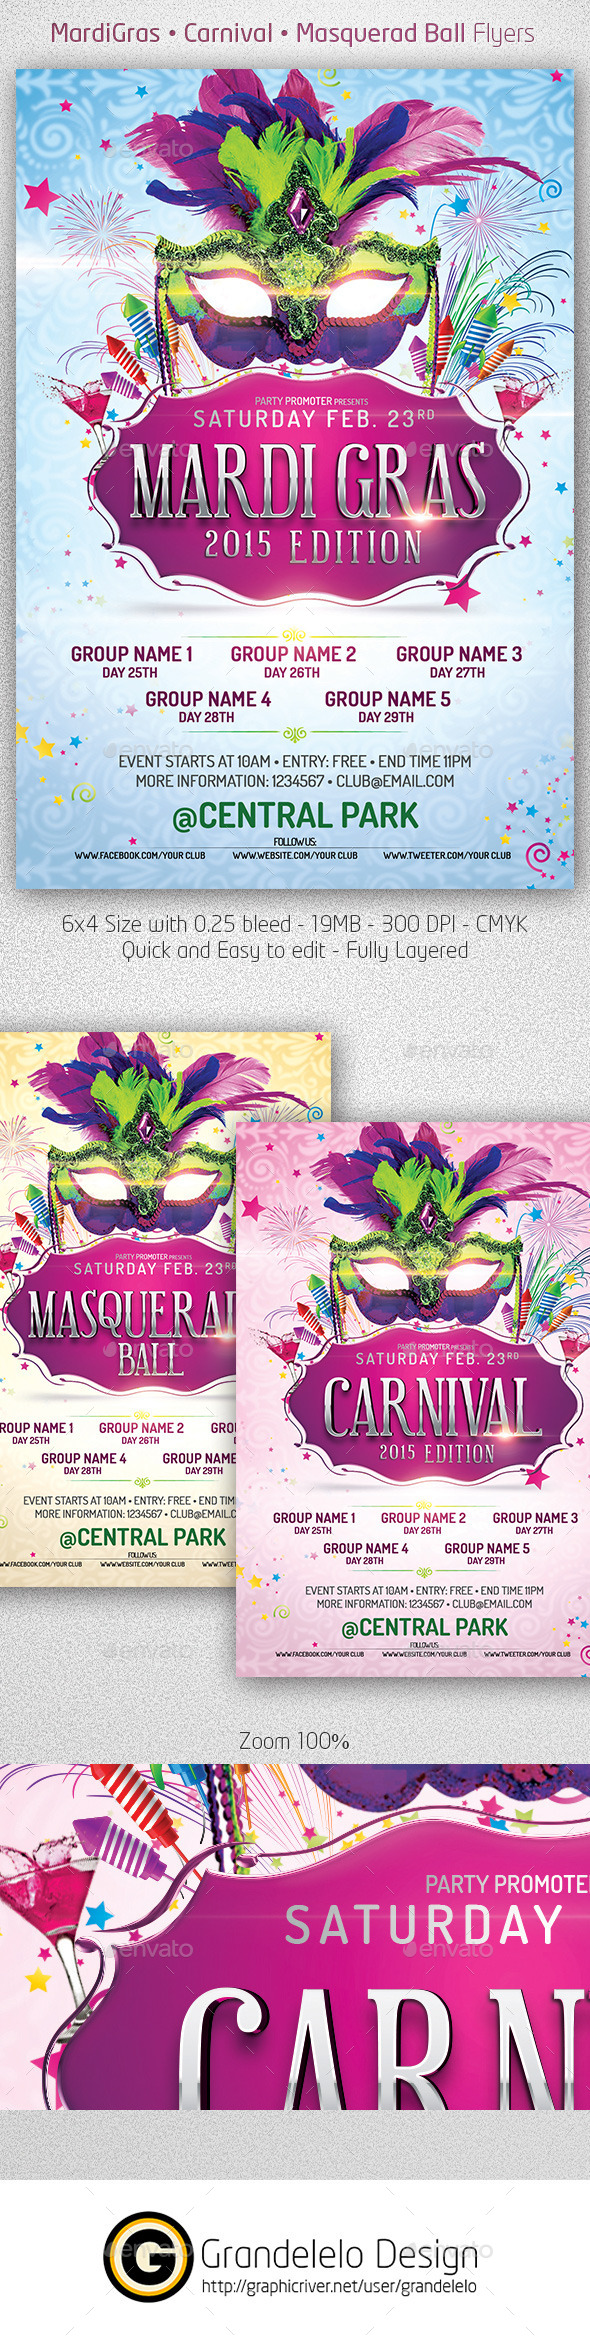 Mardi Gras 2015 The Poster Template - Clubs & Parties Events